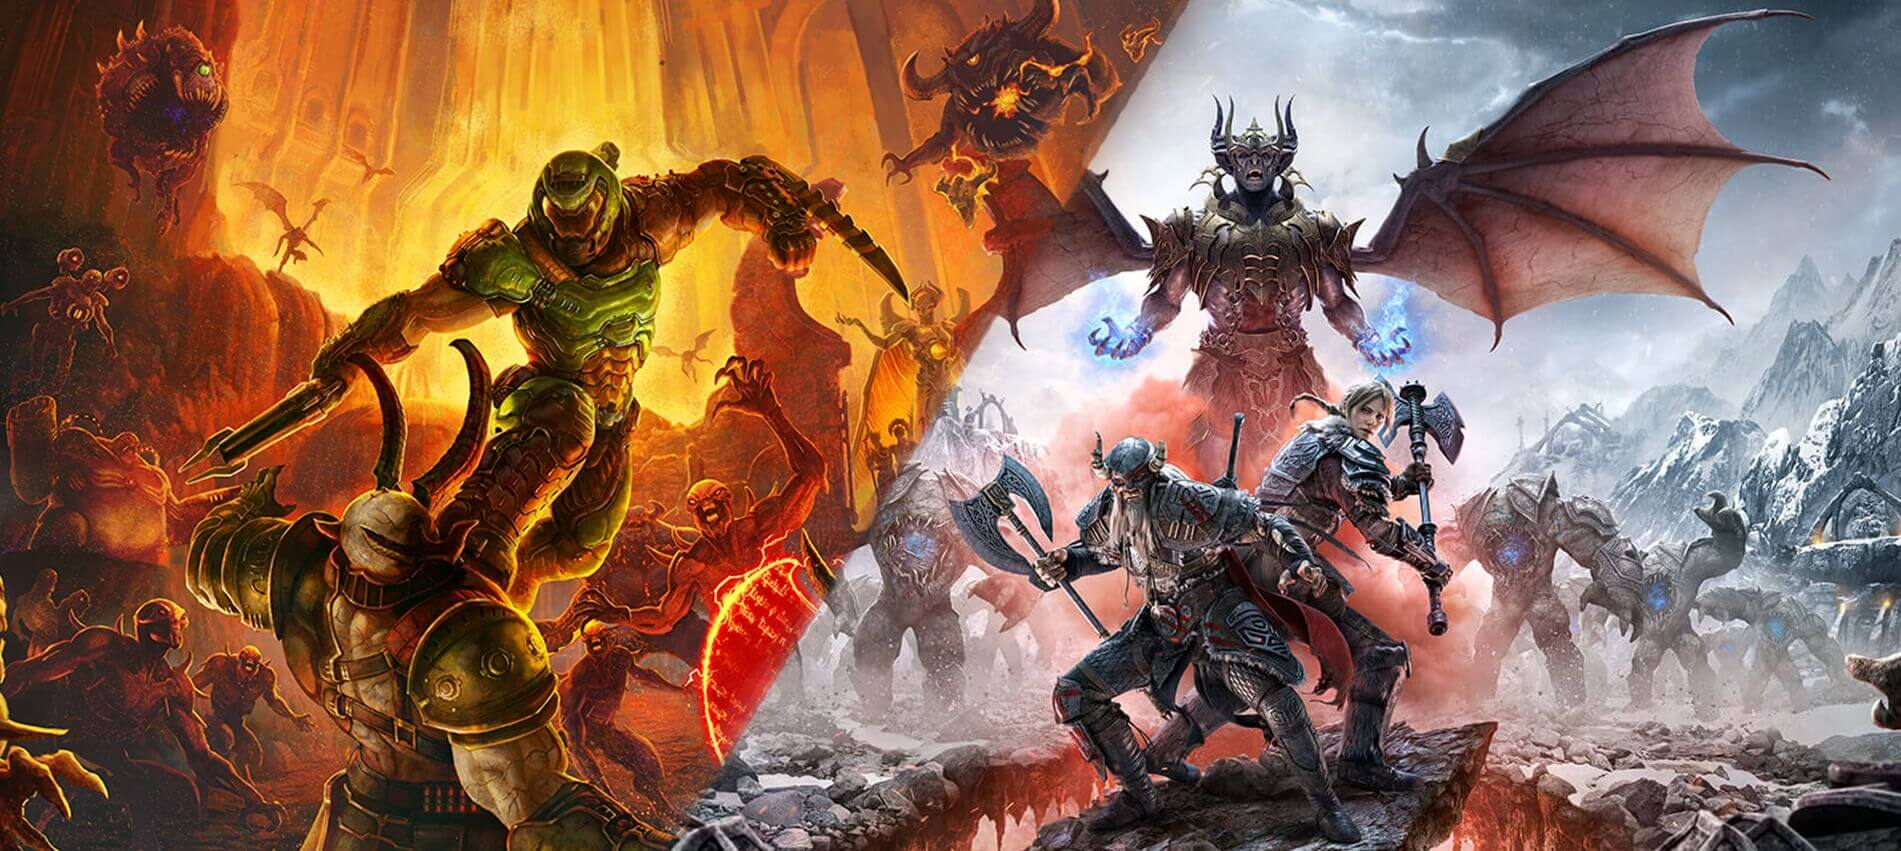 Doom Eternal and The Elder Scrolls Online are coming to next-gen consoles, with free upgrades